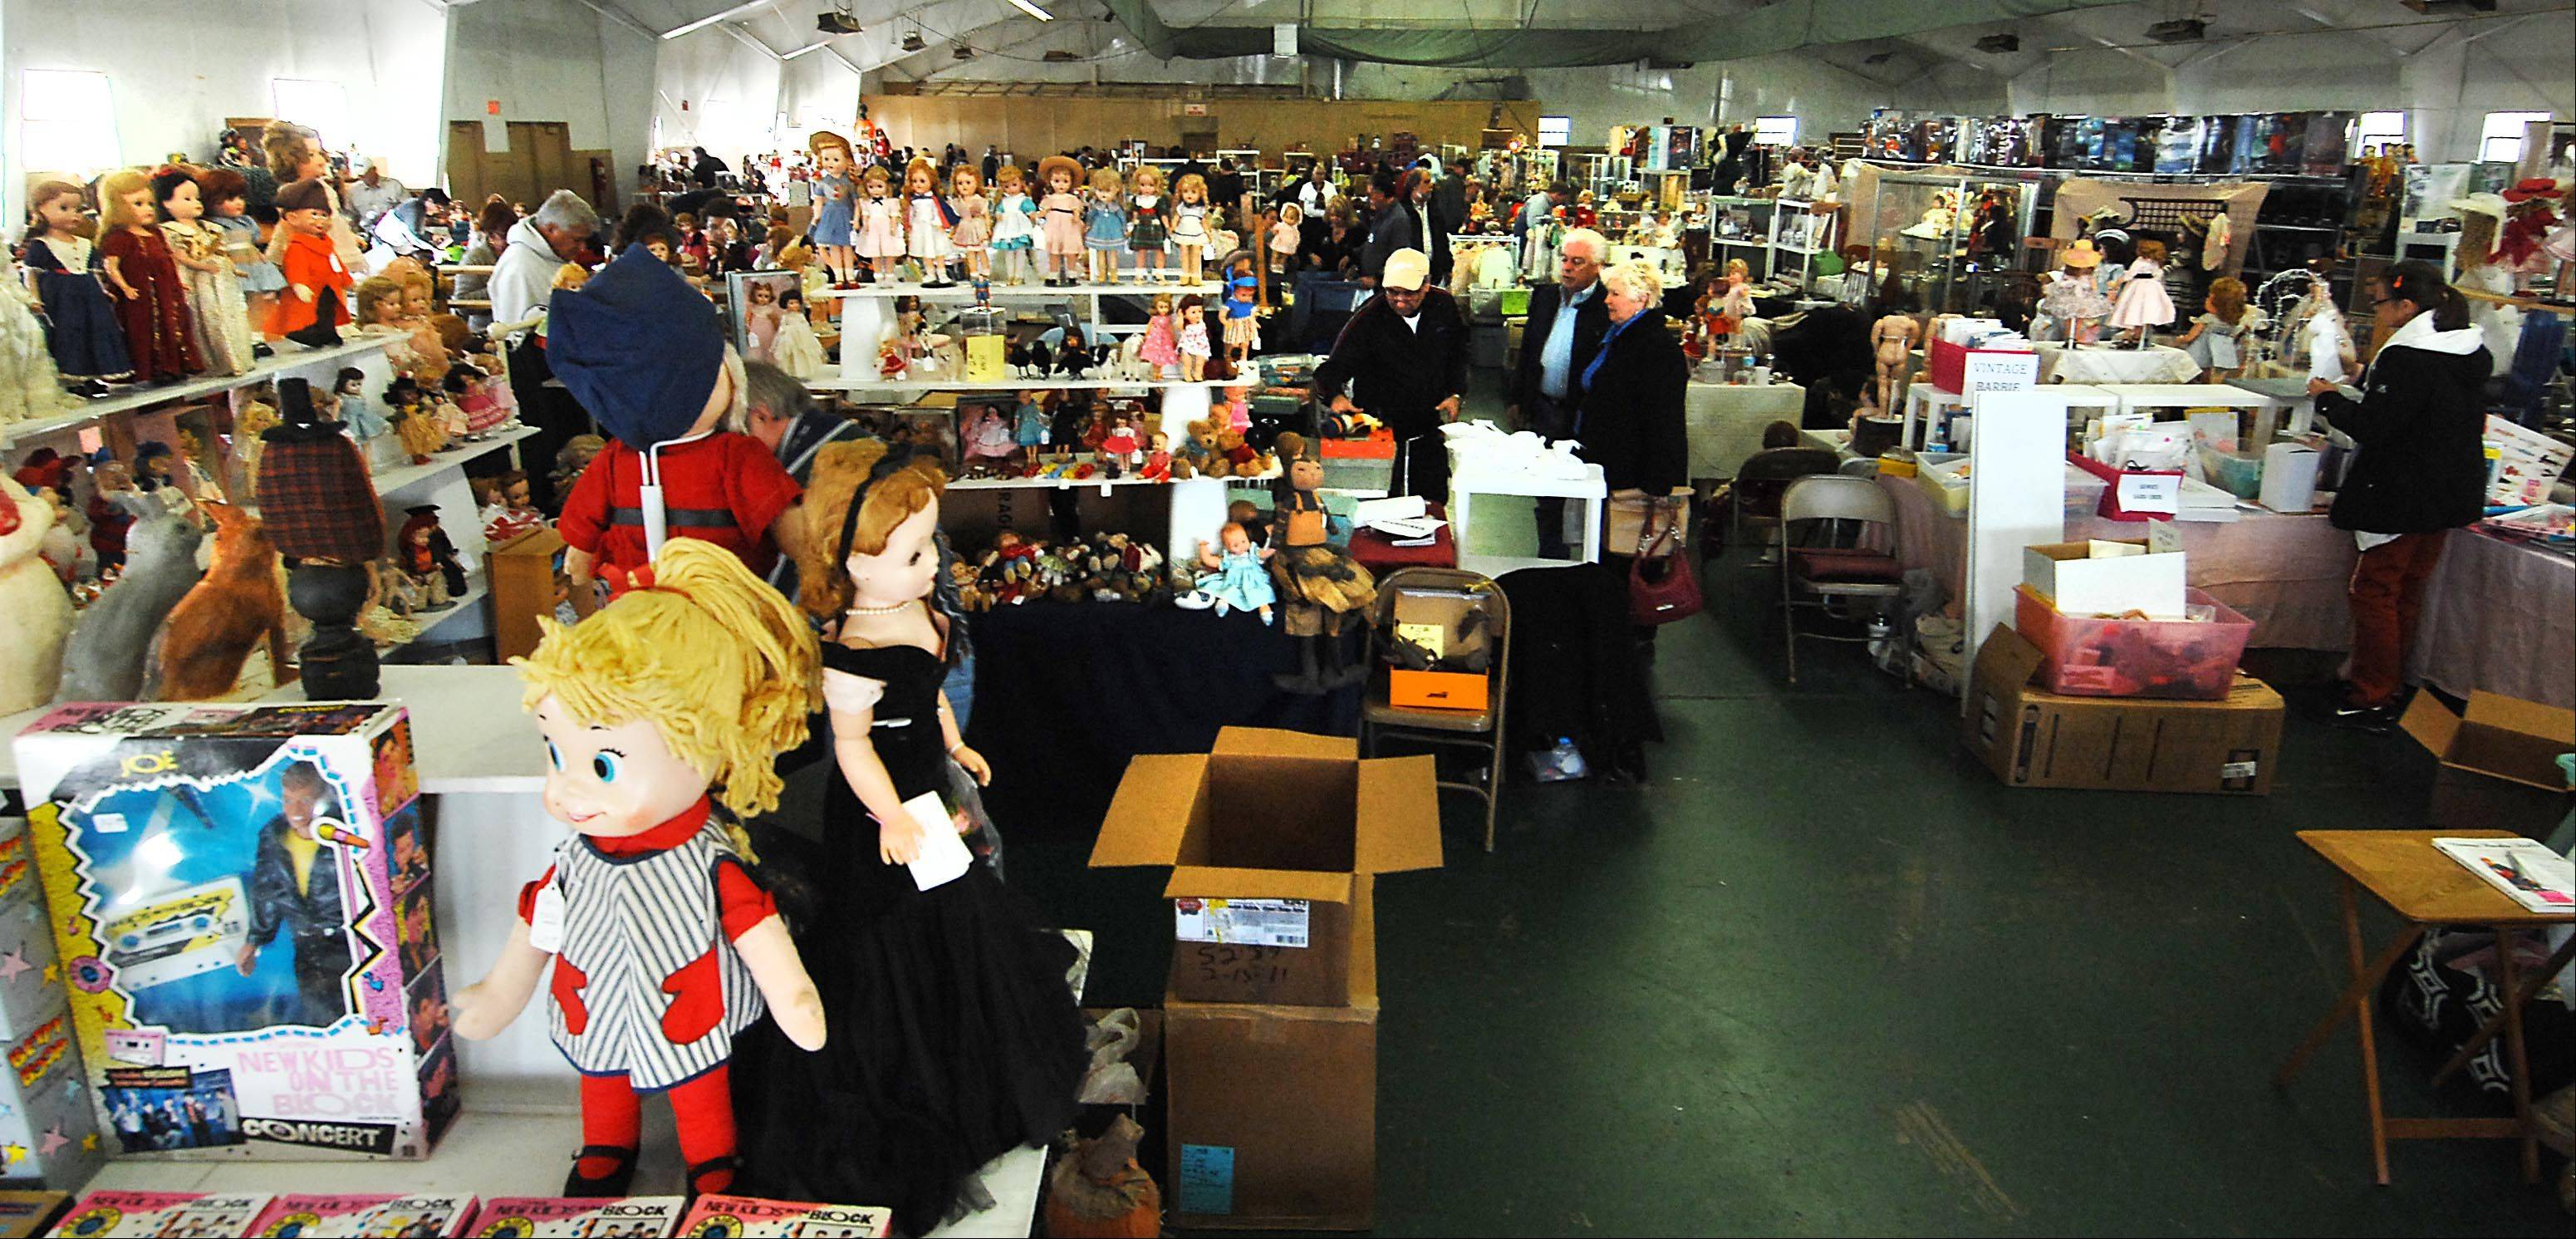 Four building were filled with collectible toys for sale Sunday at the Chicago Toy Show at the Kane County Fairgrounds in St. Charles.